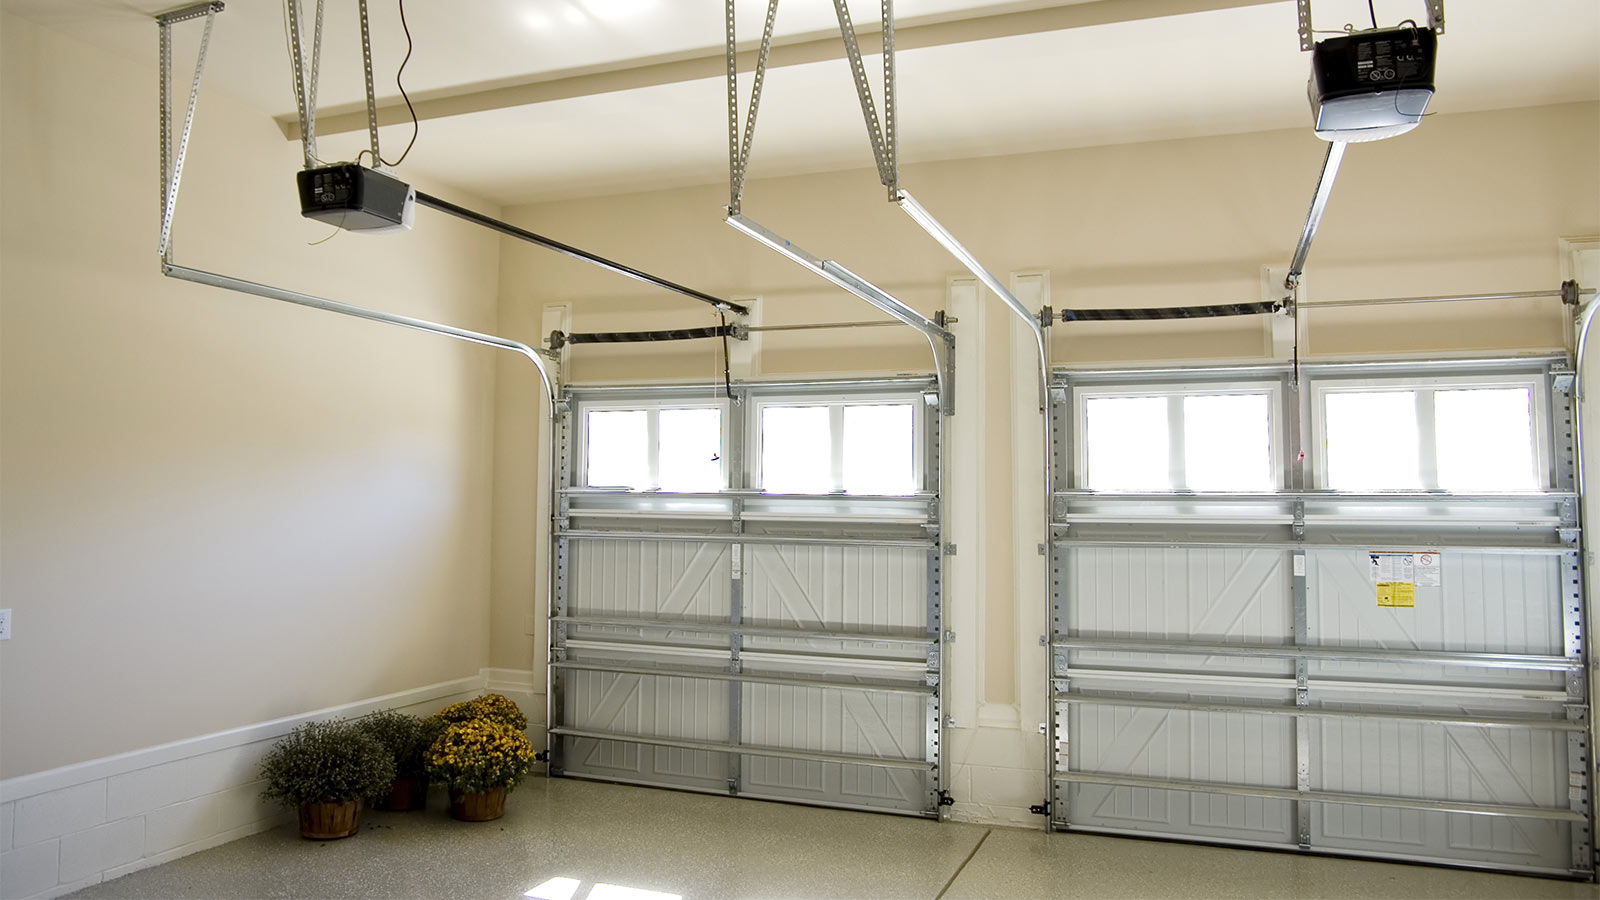 Sectional Garage Doors from Fire Shutters Brentwood suppliers.